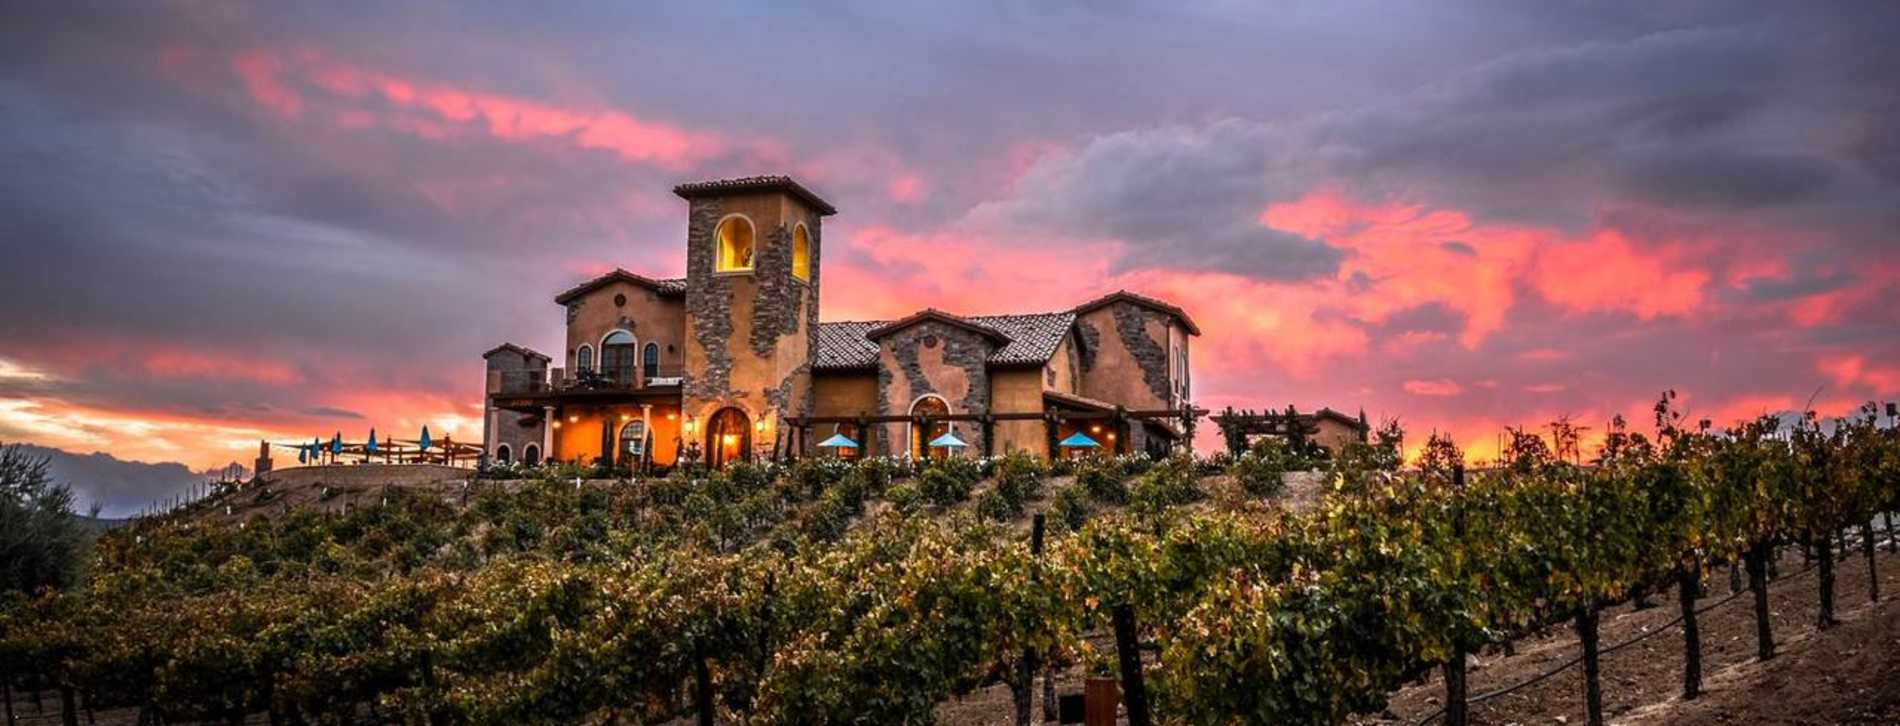 Robert Renzoni Vineyards & Winery - Temecula